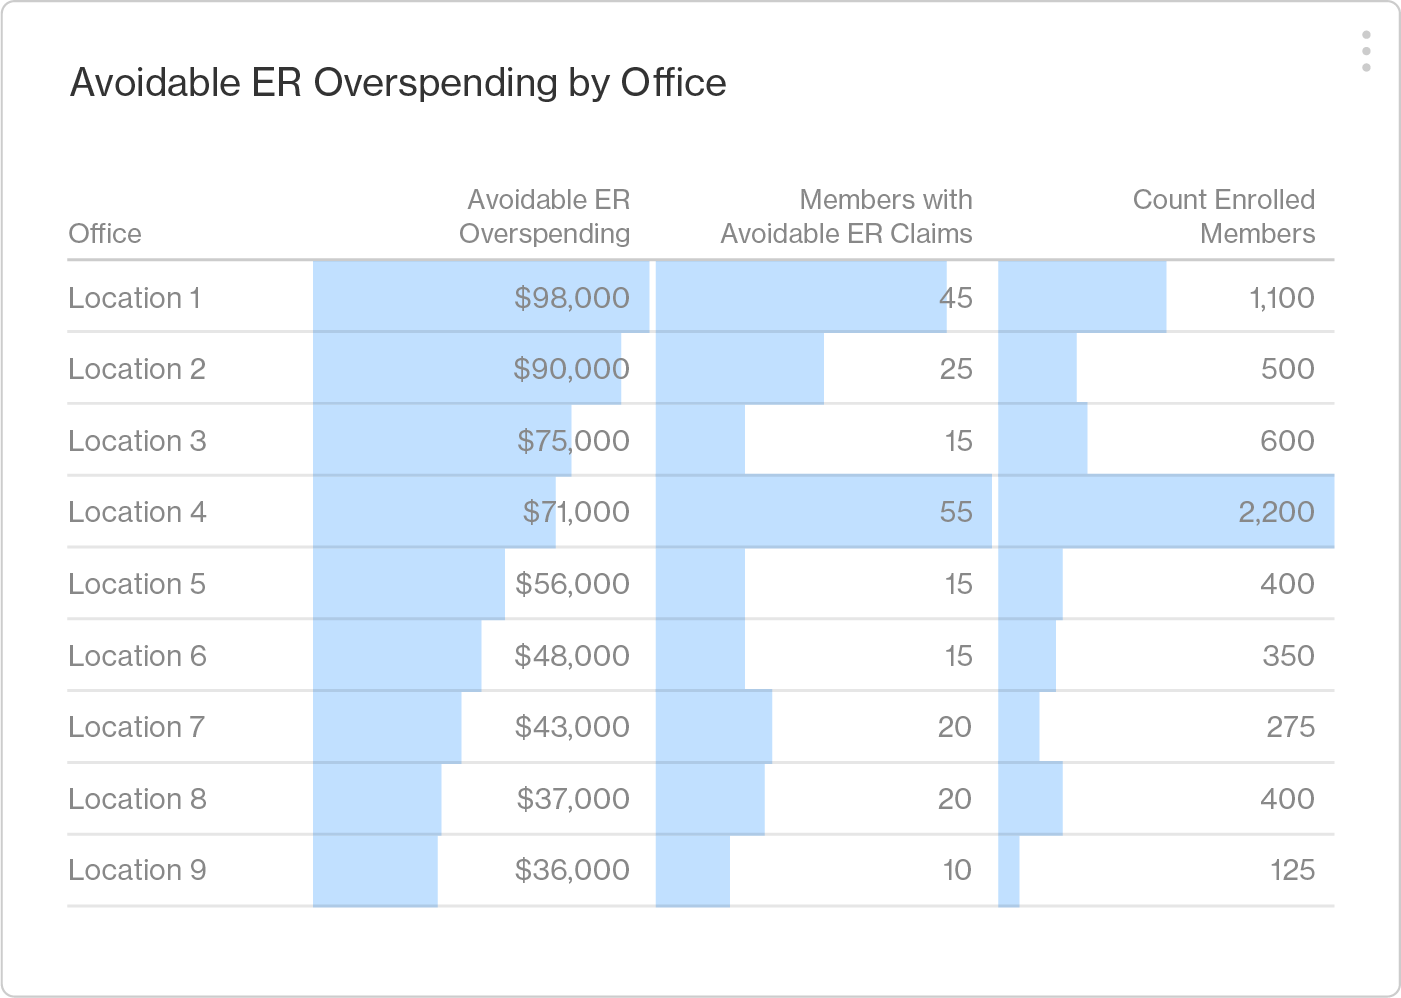 Screenshot from the Artemis Platform indicating Avoidable ER Overspending by office location.